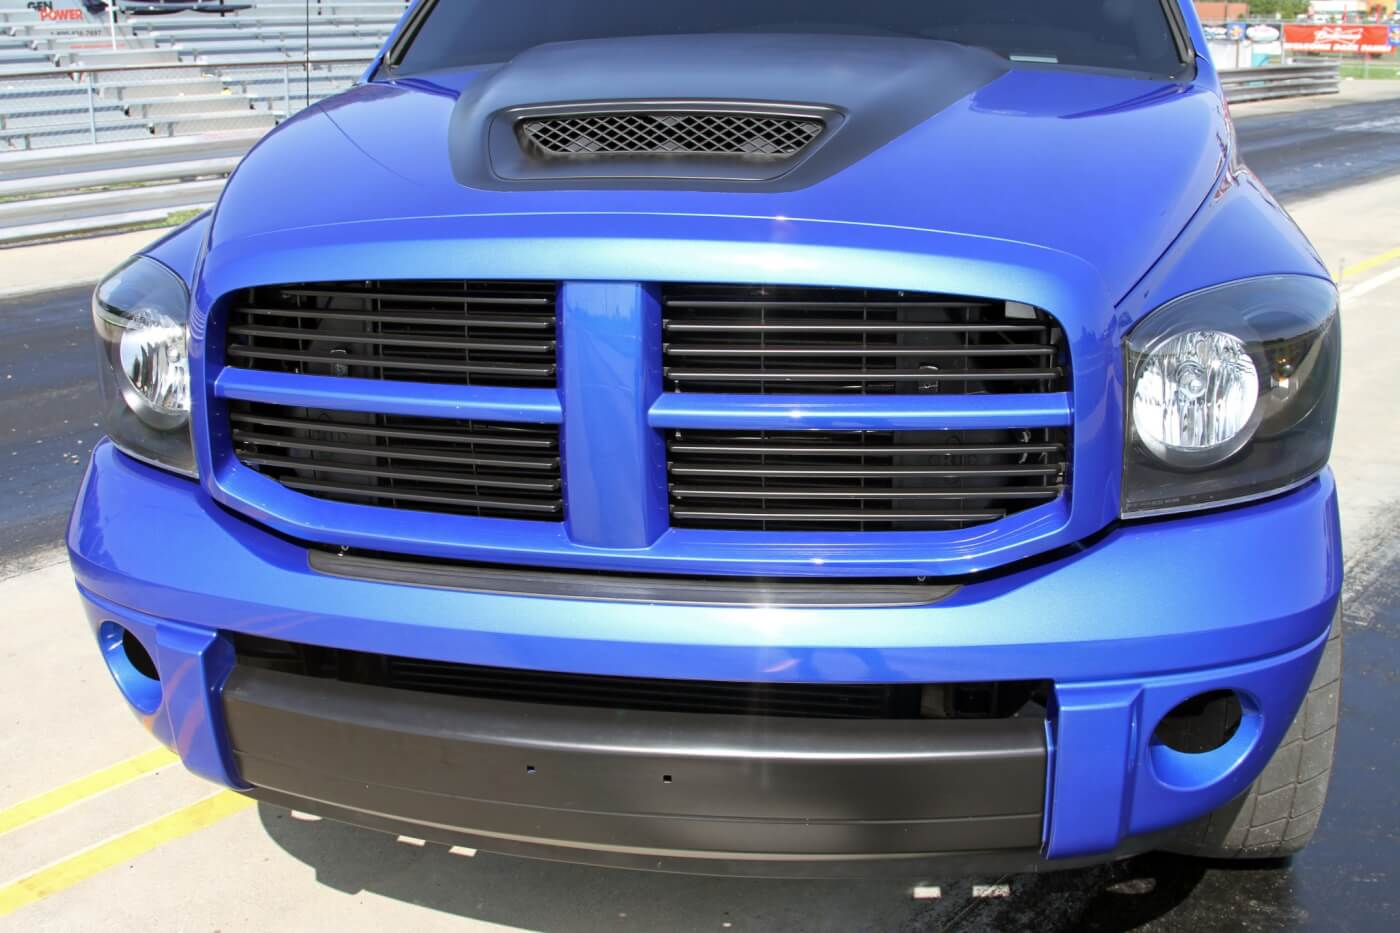 After the collision damage was repaired Rose chose to go with an SRT10 hood, grille and bumper for better looks on the truck. Notice that they also filled the Dodge emblem in the grille for a smooth clean look.